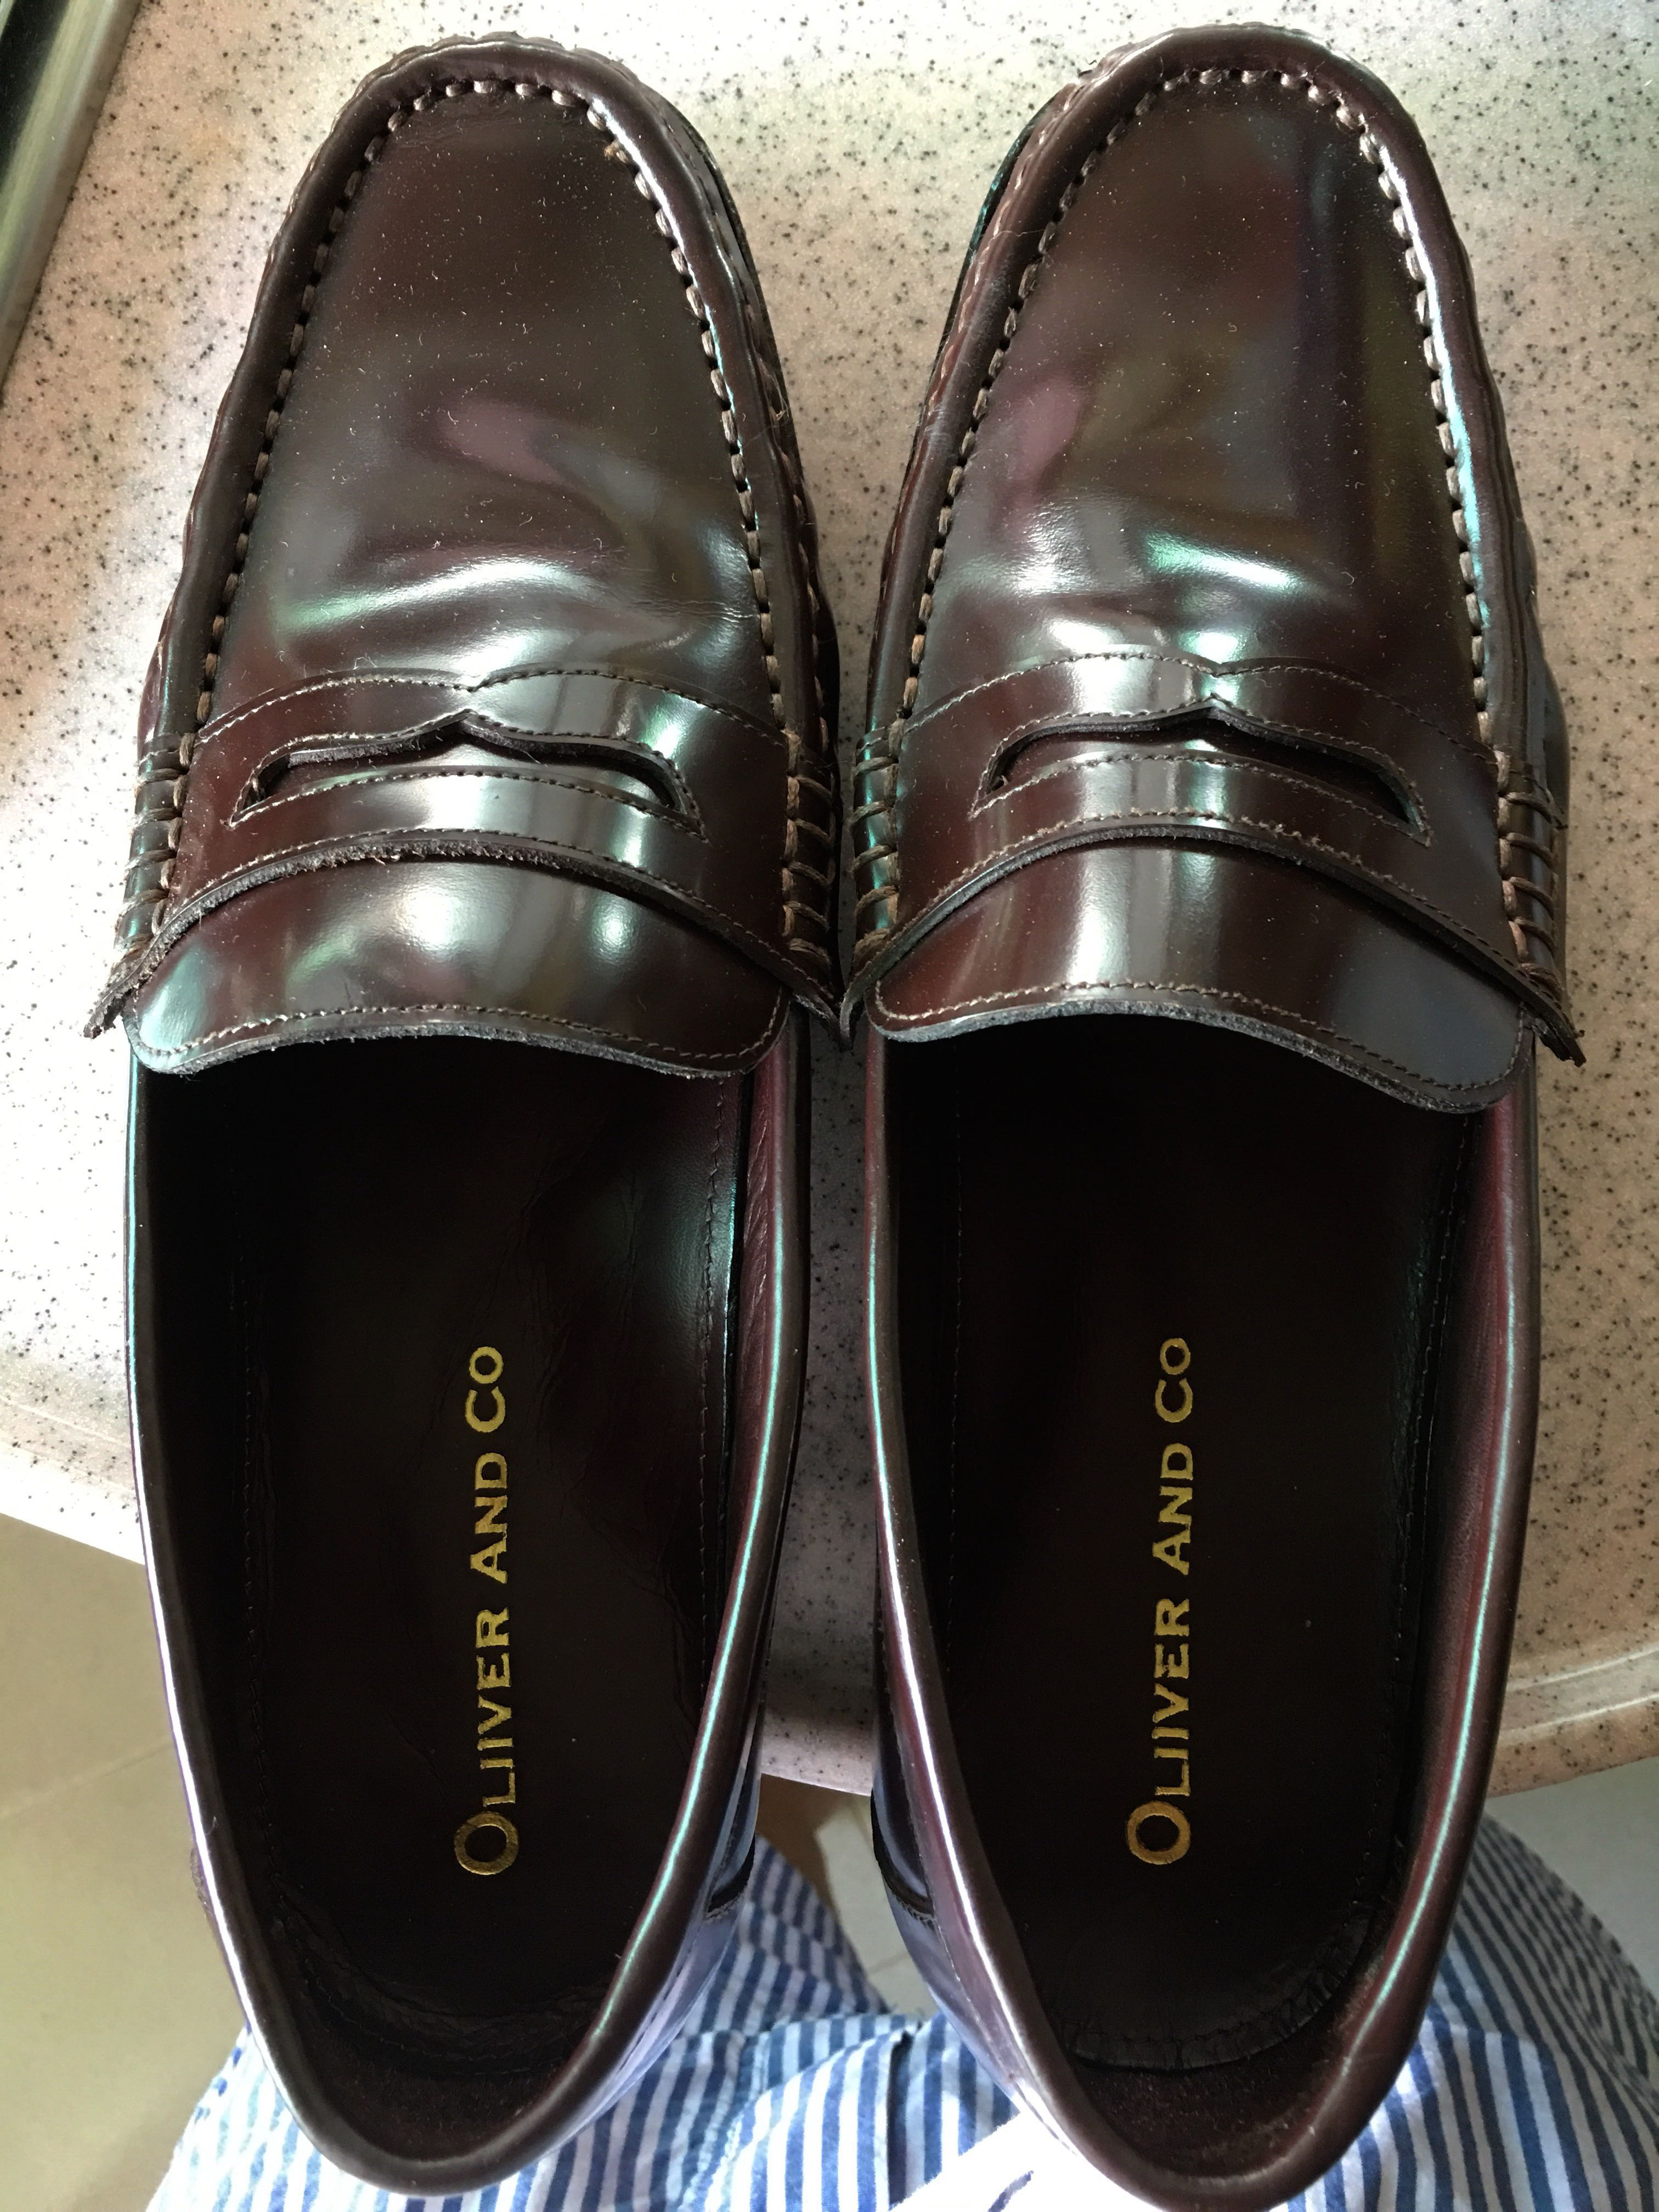 aab96bfca74 Penny Loafers Vintage - Oliver and Co.